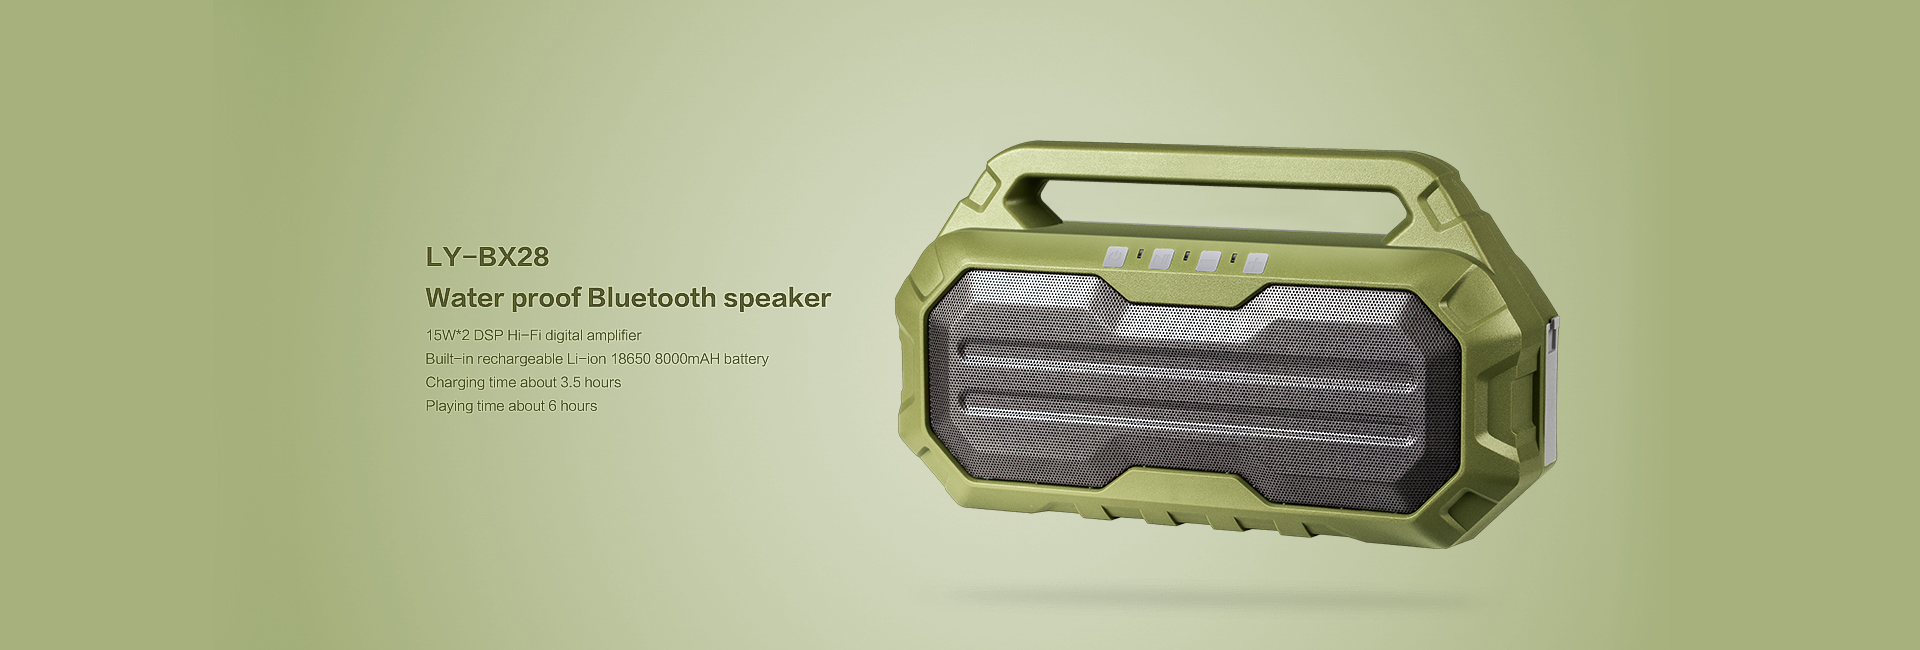 LY-BX28  Water proof Bluetooth speaker